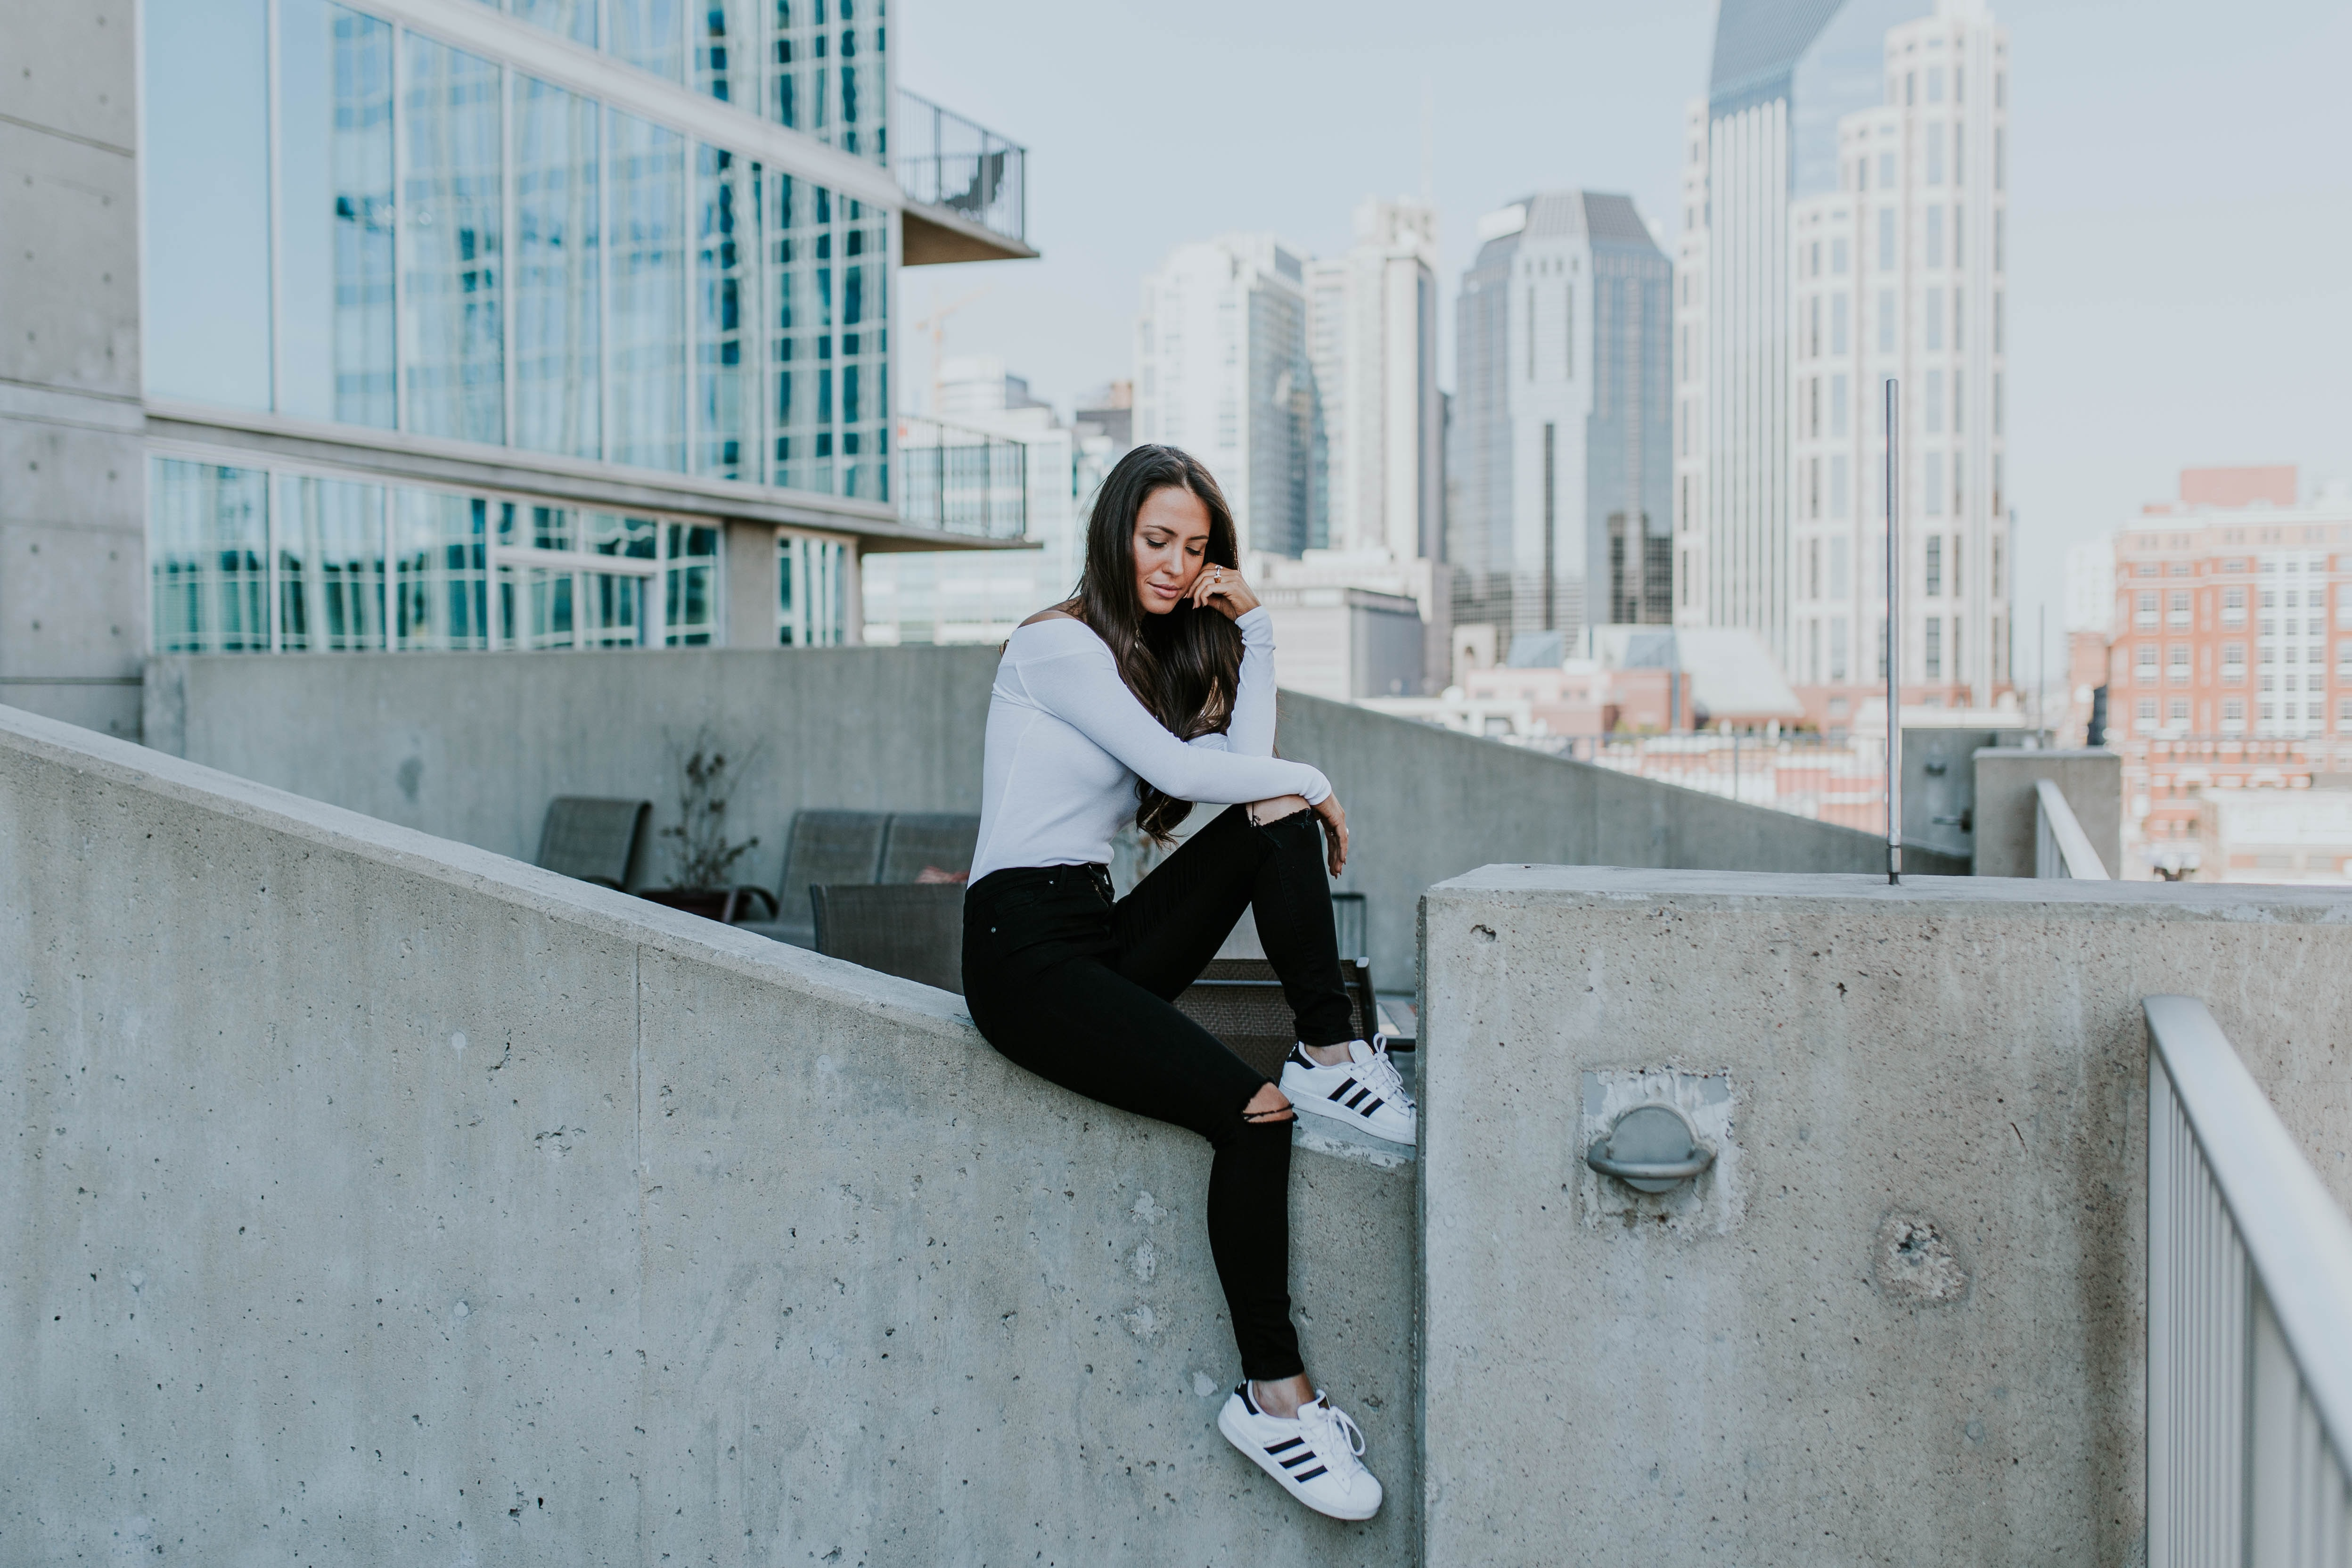 A young woman in ripped jeans posing while sitting on a concrete ledge in a city